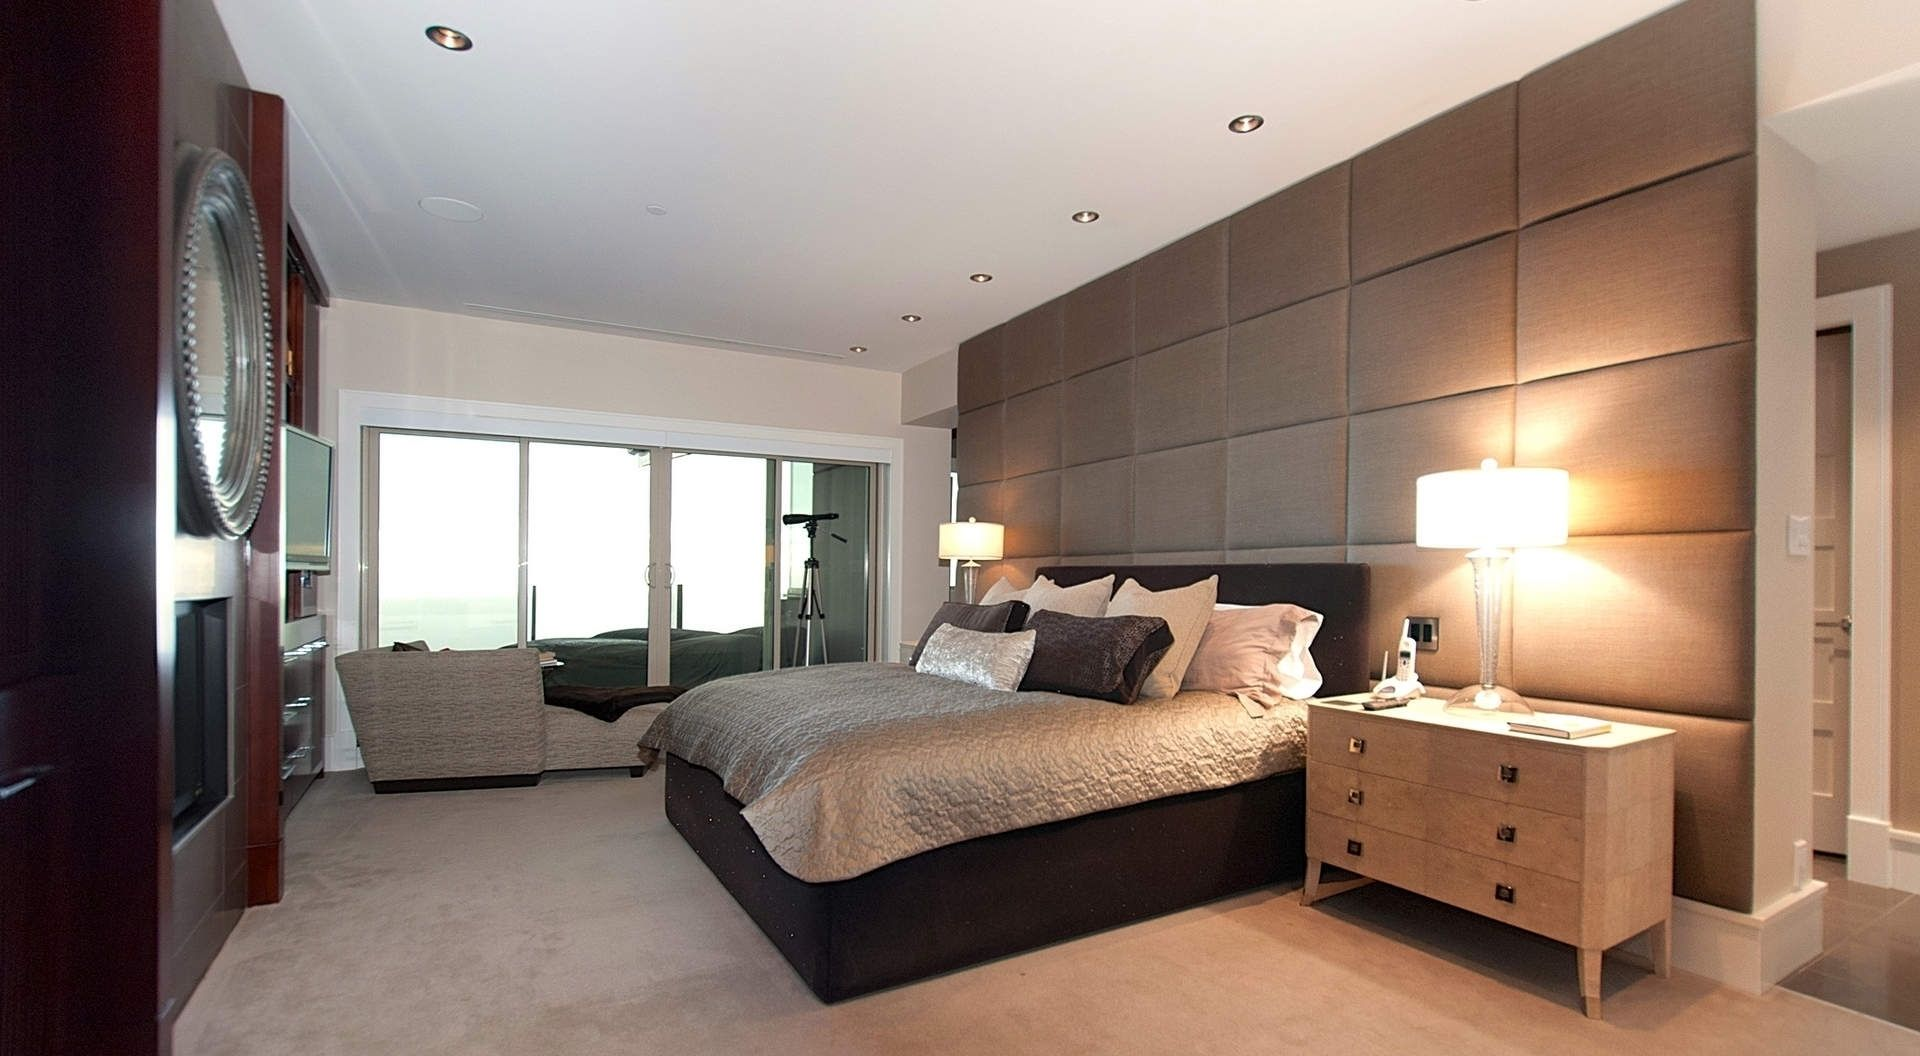 10 Top Houzz Master Bedroom Ideas For Your House | Modern ...